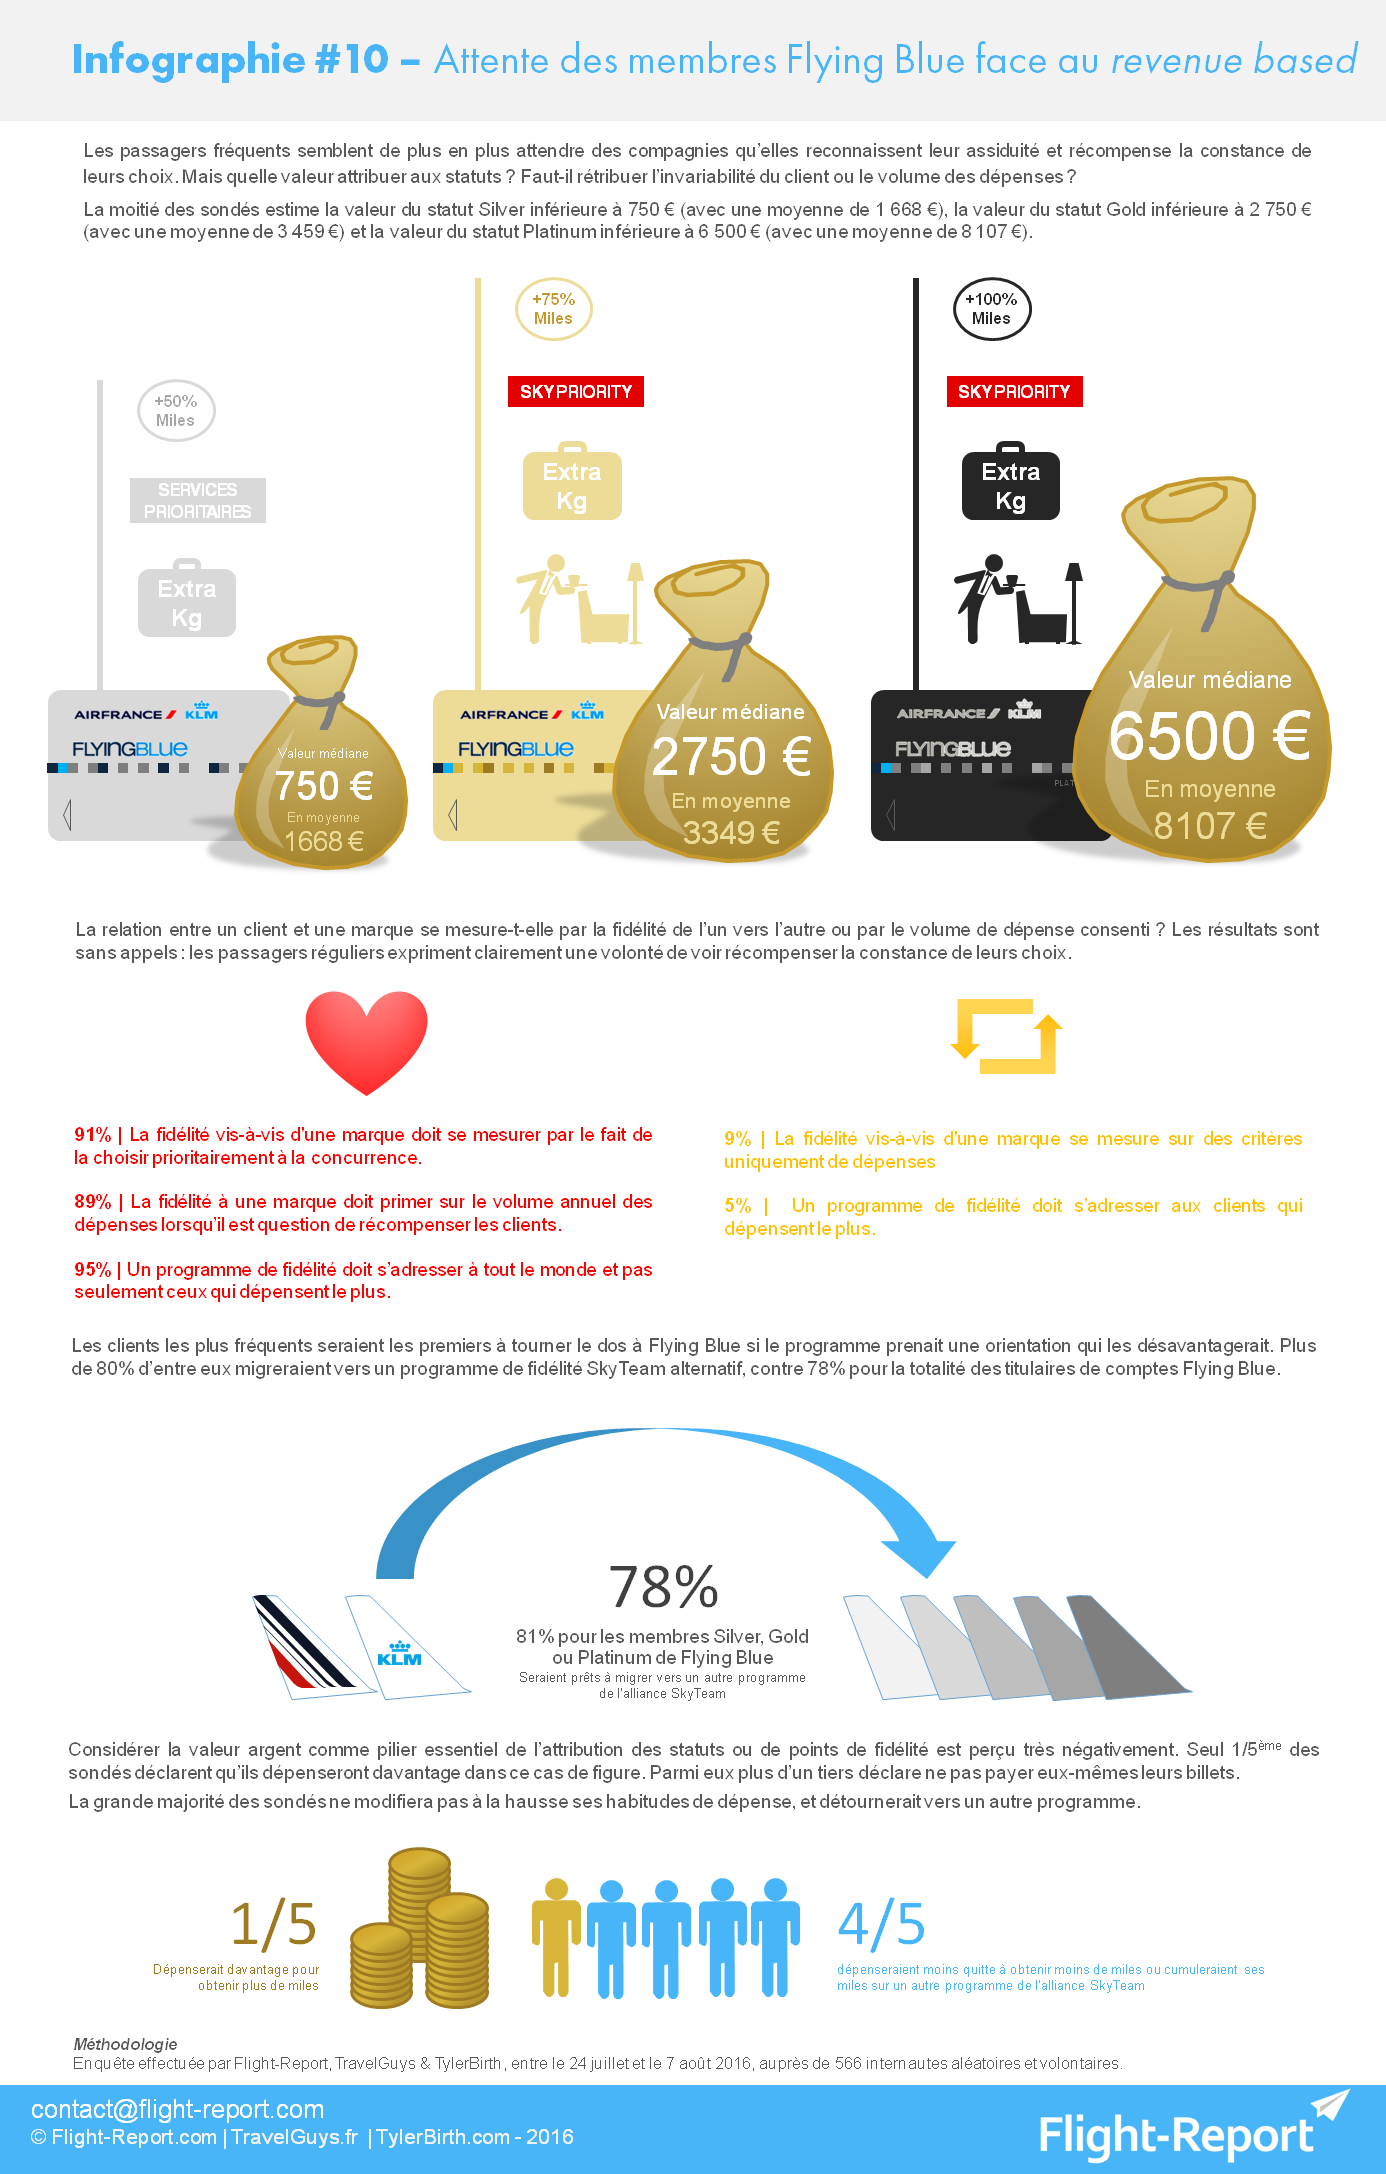 infographie-10-attente-des-membres-flying-blue-face-au-revenue-based-v2